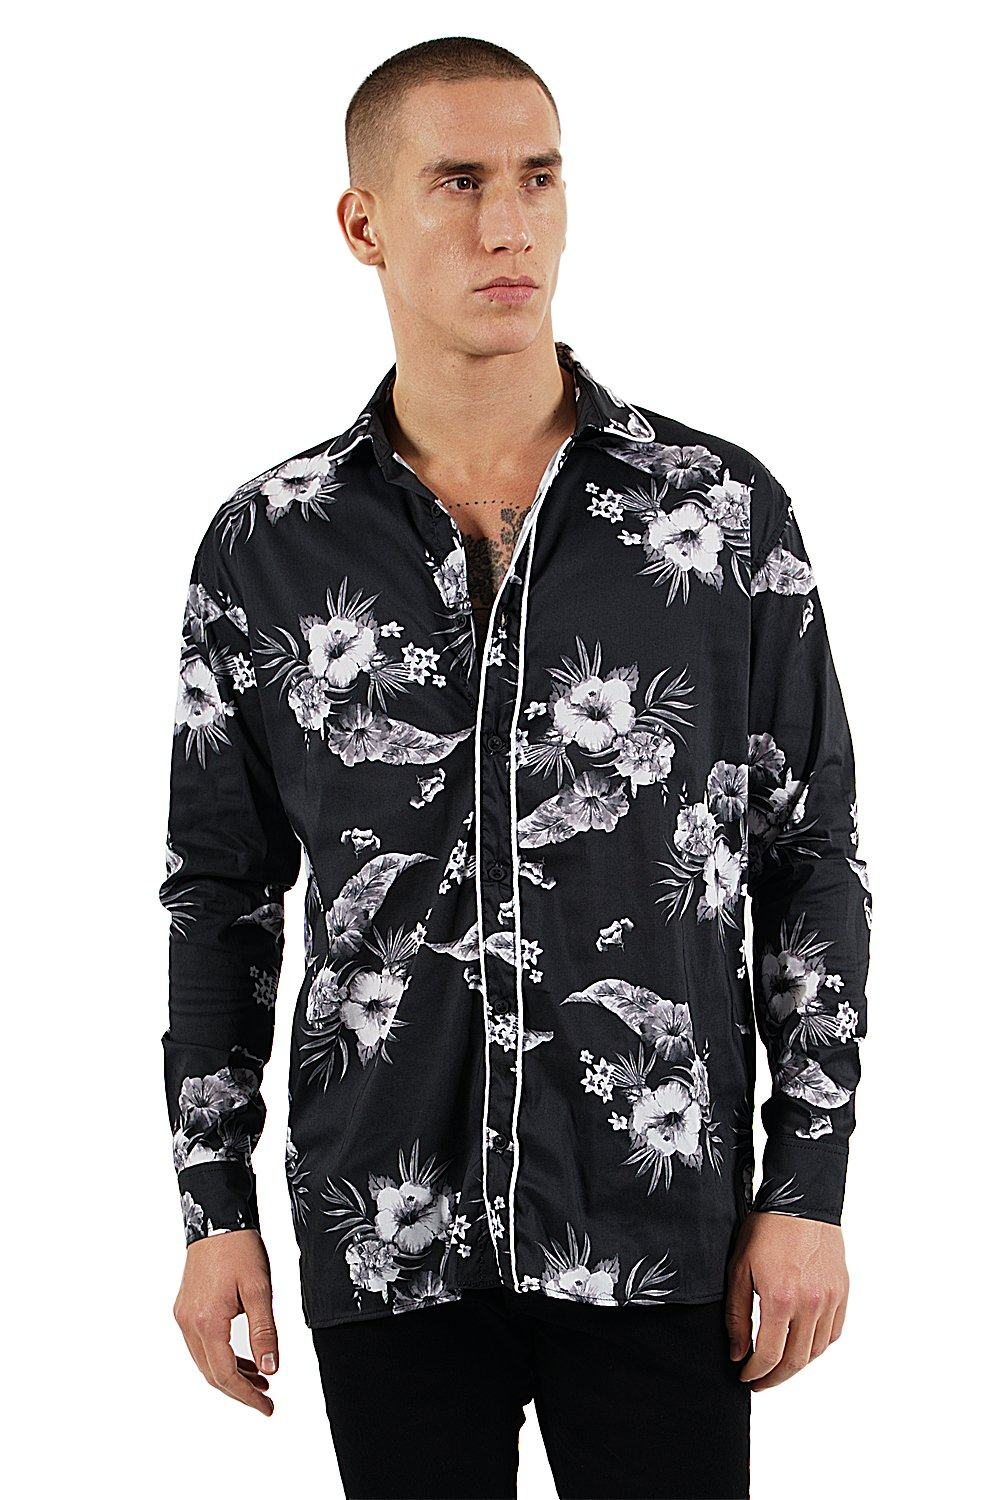 Dijon Flower Shirt Black